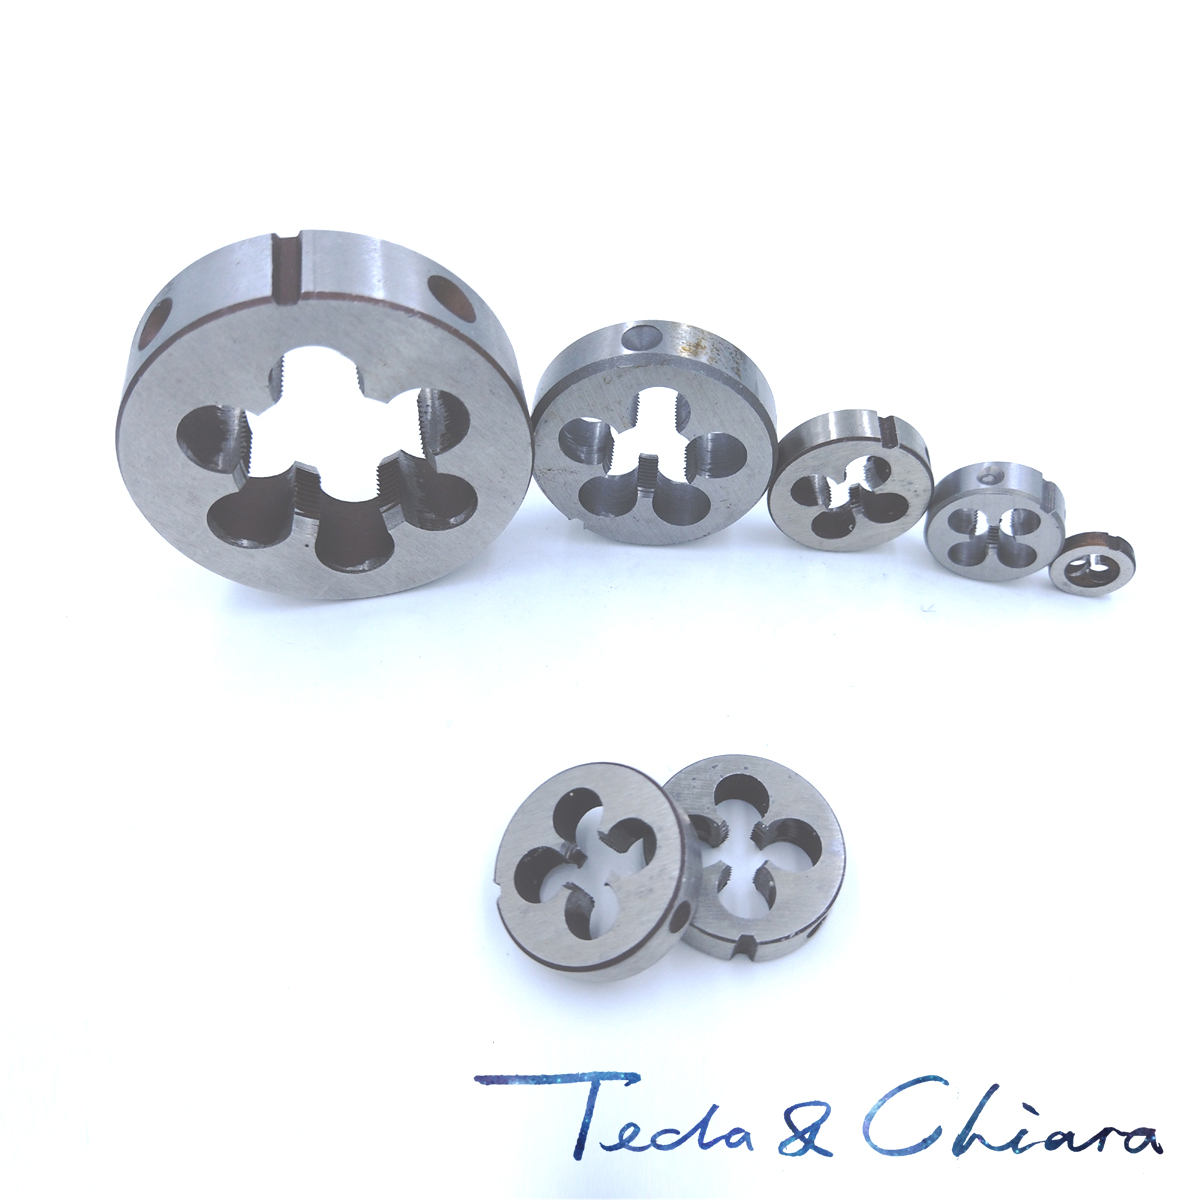 1Pc 5/16-18 5/16-20 5/16-24 5/16-27 UNC UN UNF UNS Right Hand Die TPI Threading Tools Mold Machining 5/16 5/16